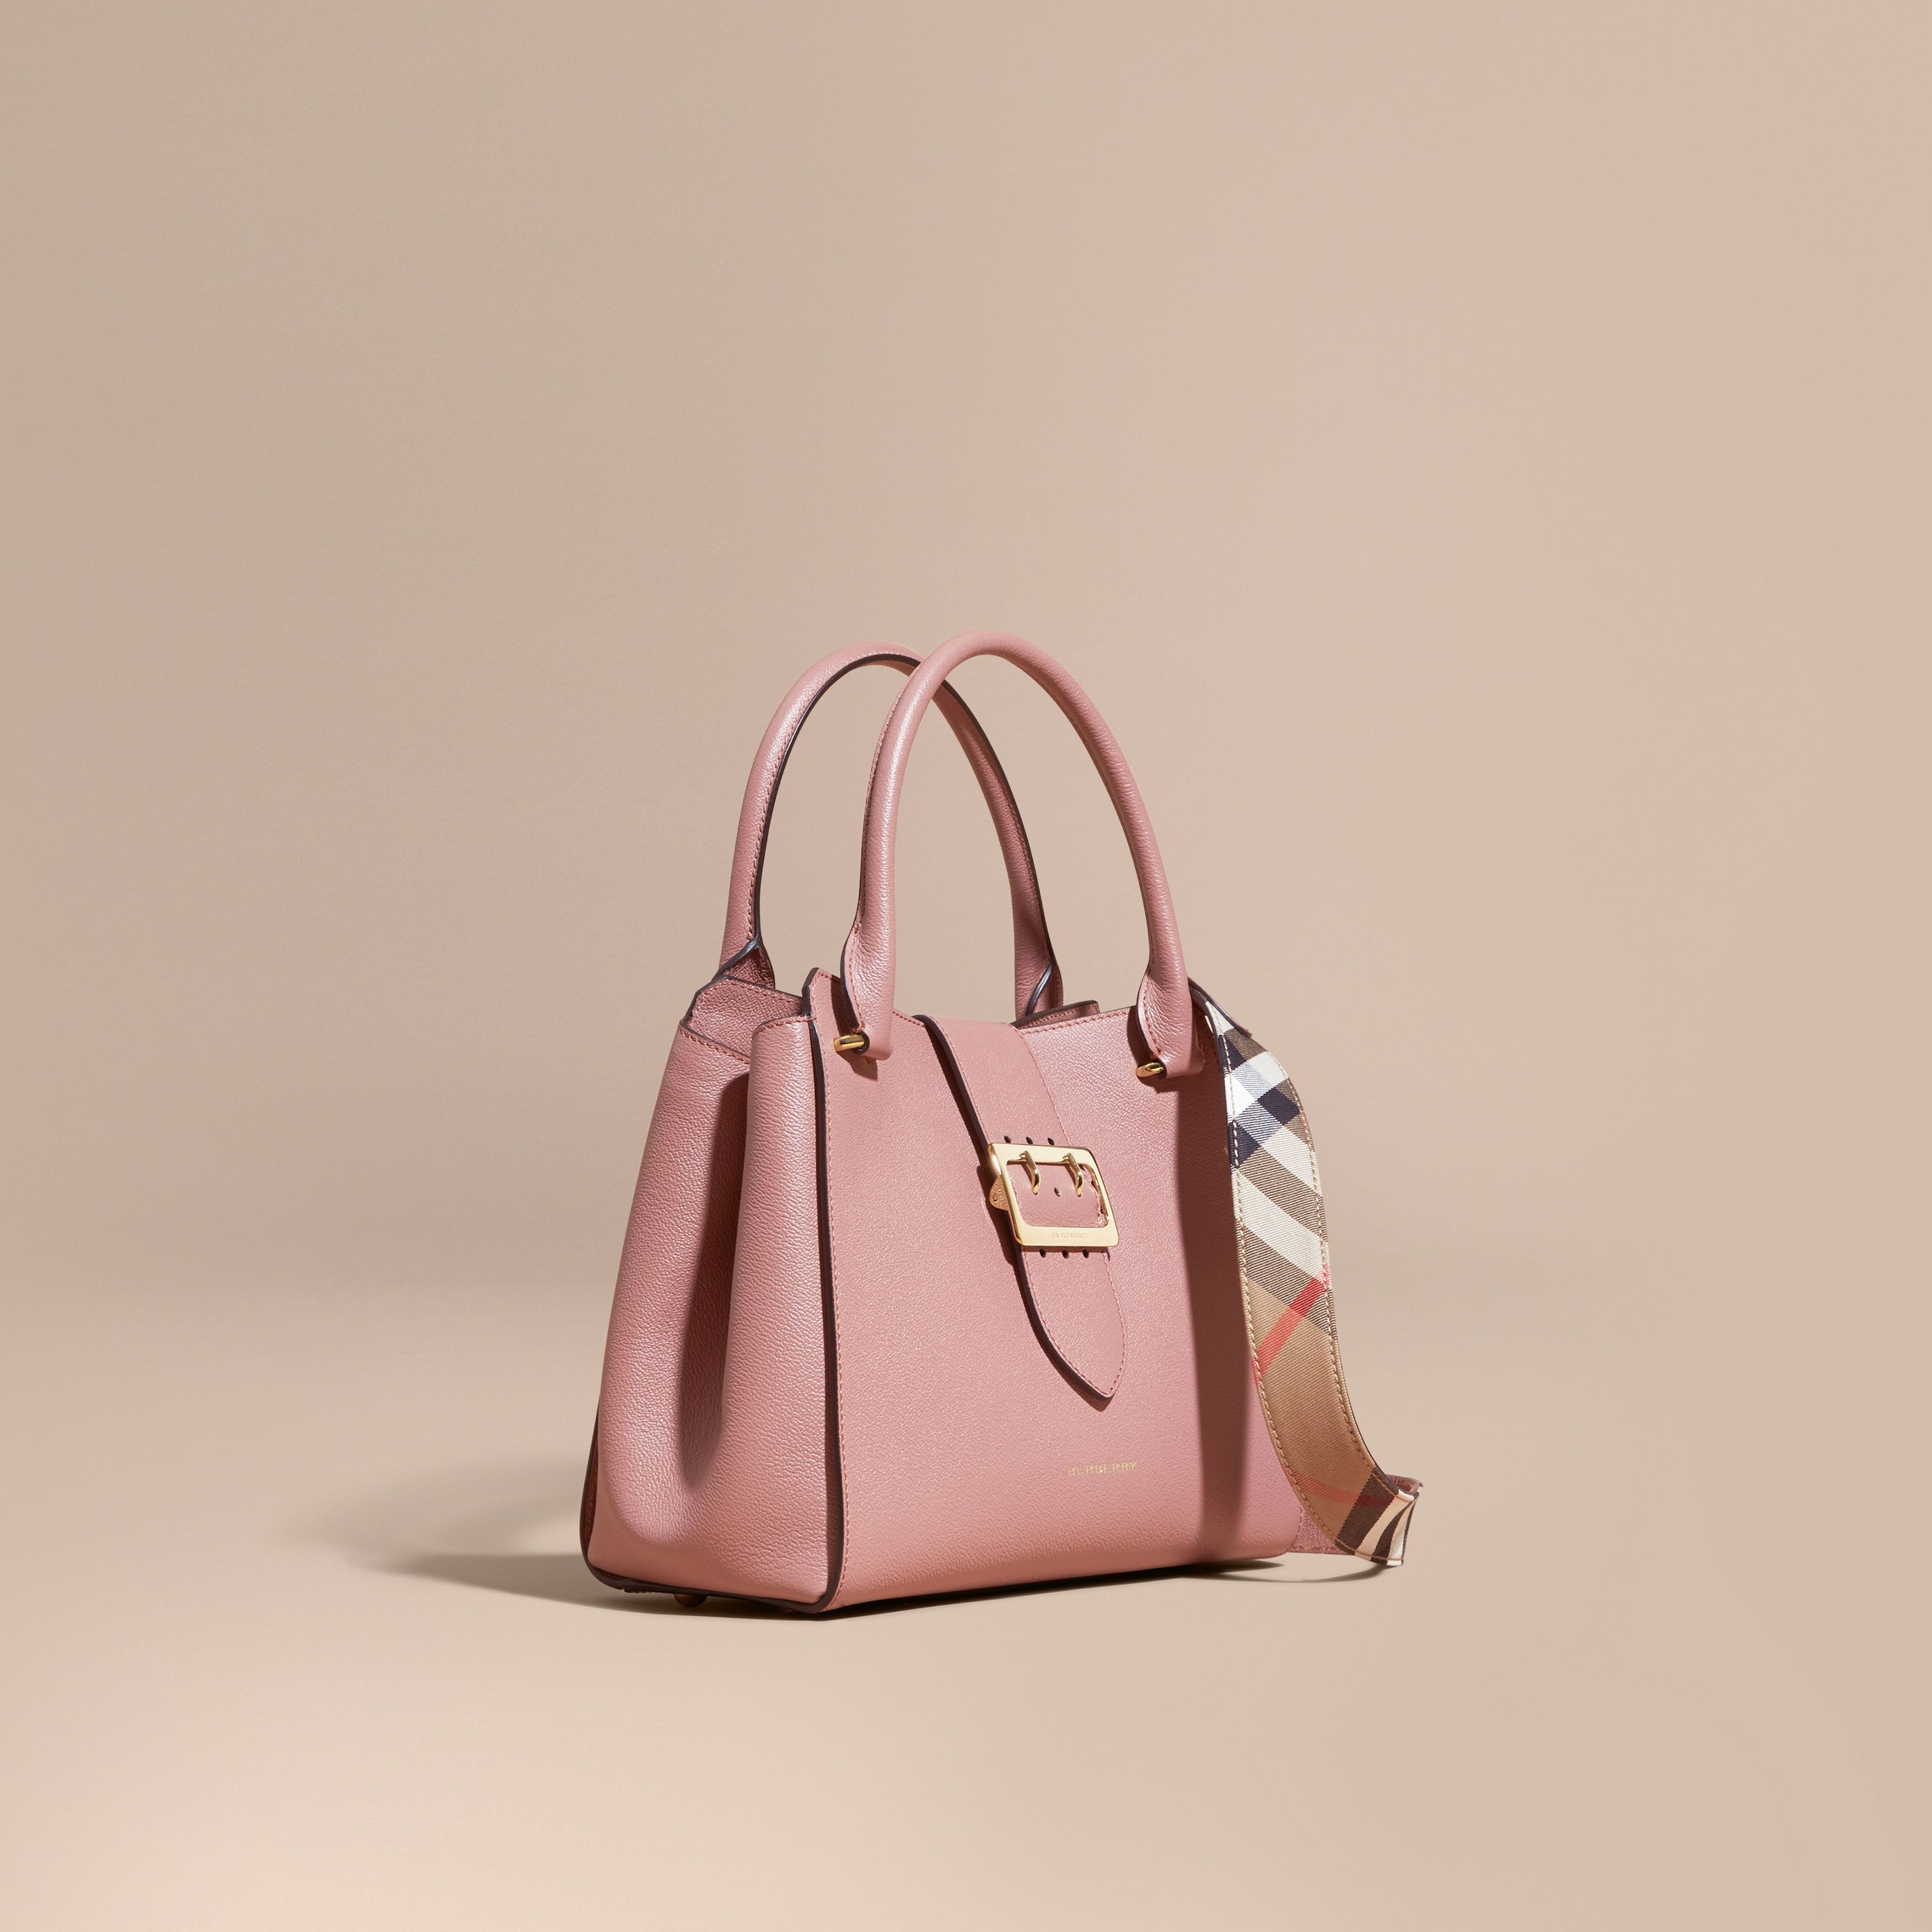 92c7b008c9 Tote Bags | Burberry in 2019 | FALL WINTER 2017 HANDBAGS | Bags ...